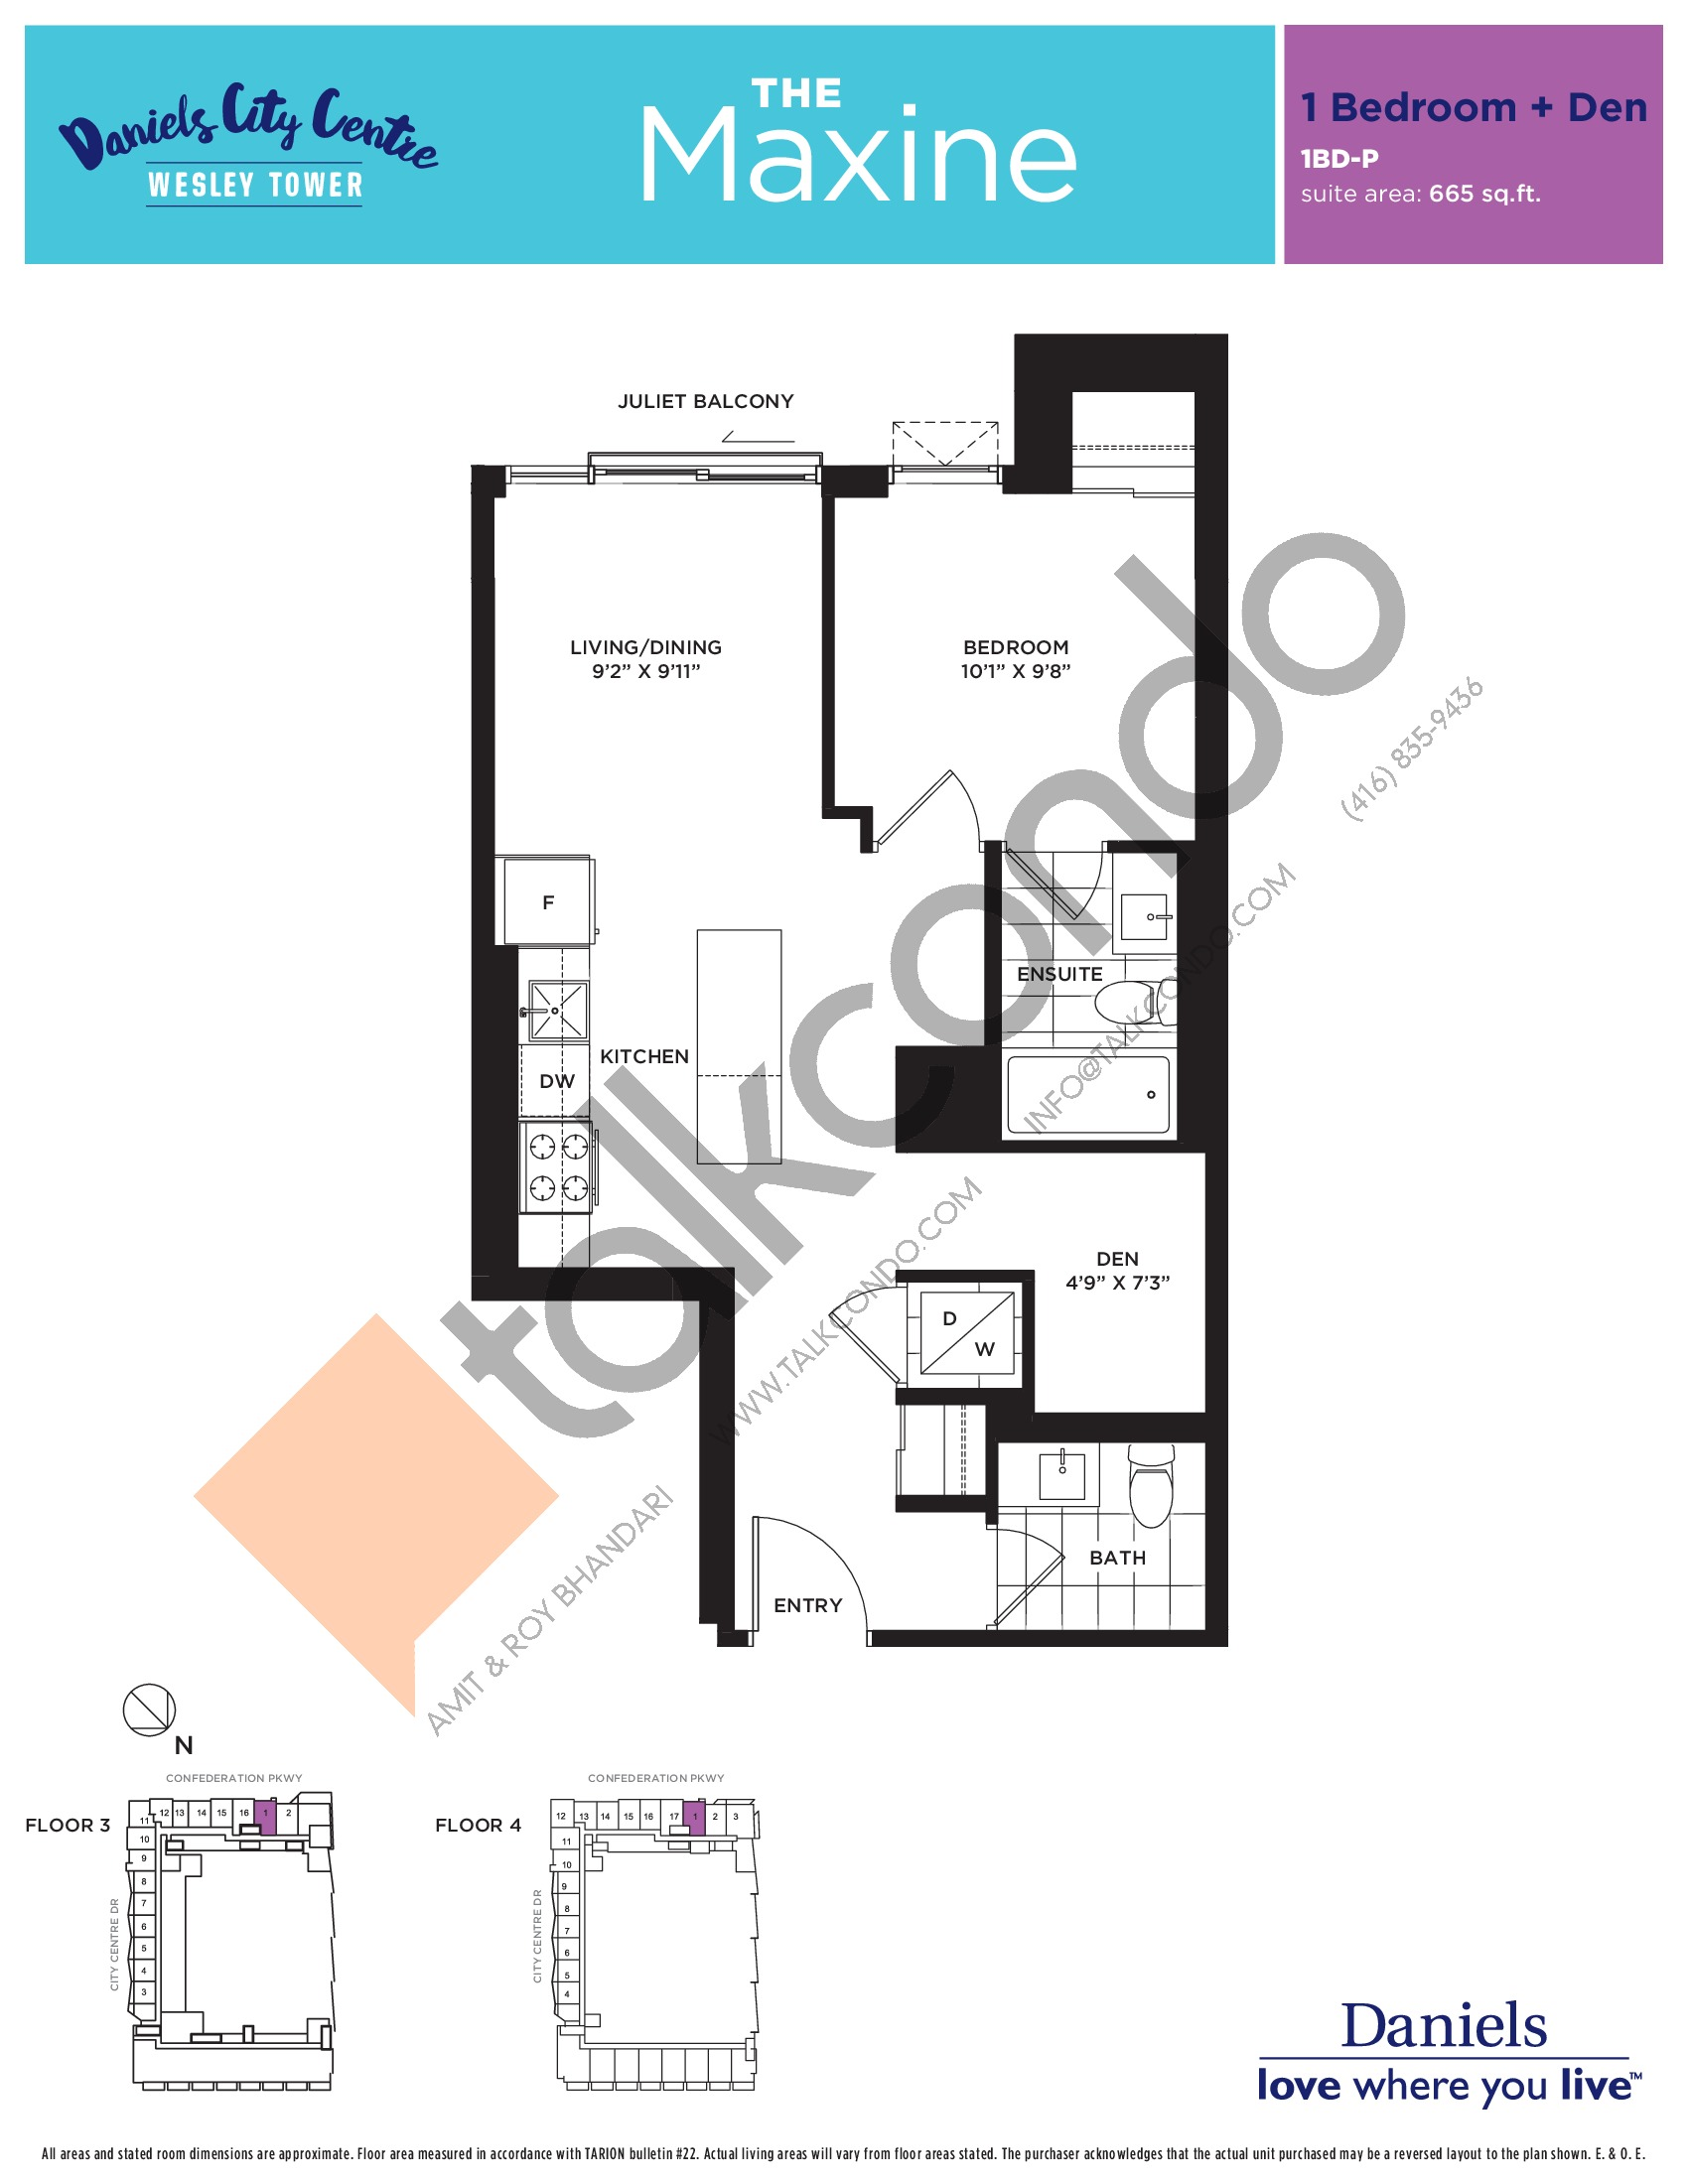 The Maxine Floor Plan at The Wesley Tower at Daniels City Centre Condos - 665 sq.ft